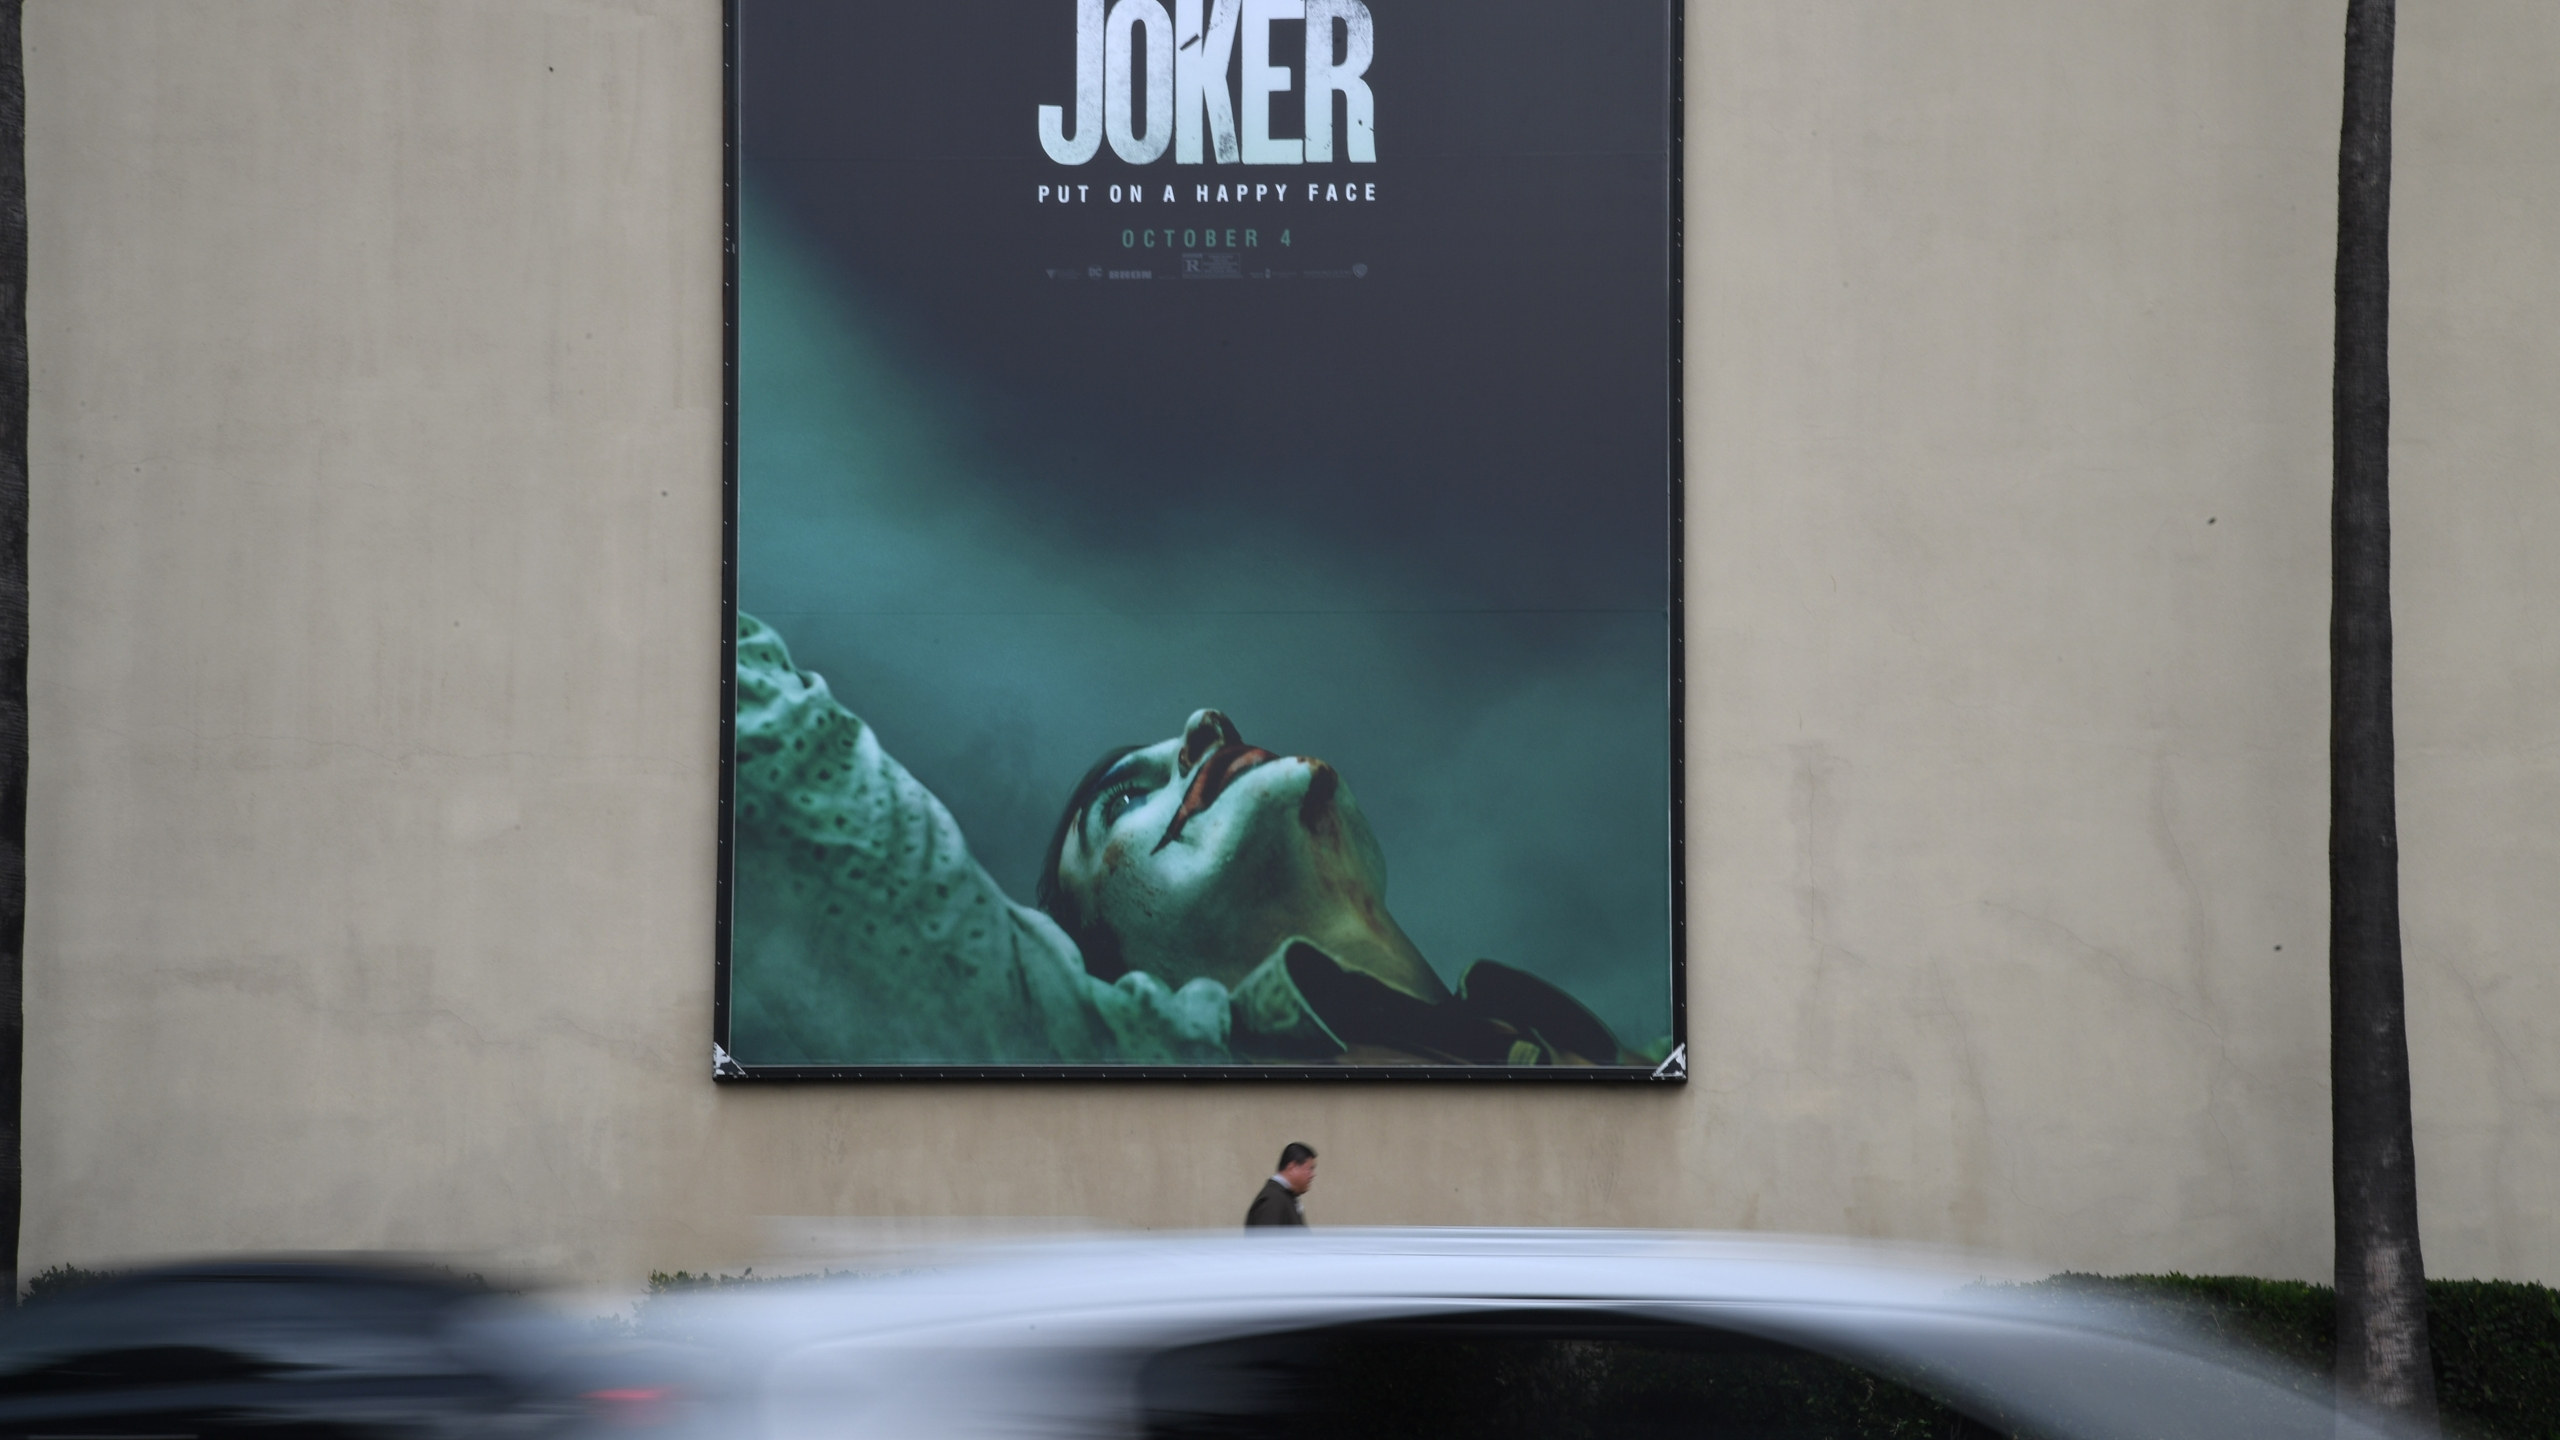 """A poster for the upcoming film """"The Joker"""" is seen outside Warner Brothers Studios in Burbank, Calif., Sept. 27, 2019. (Credit: ROBYN BECK/AFP/Getty Images)"""